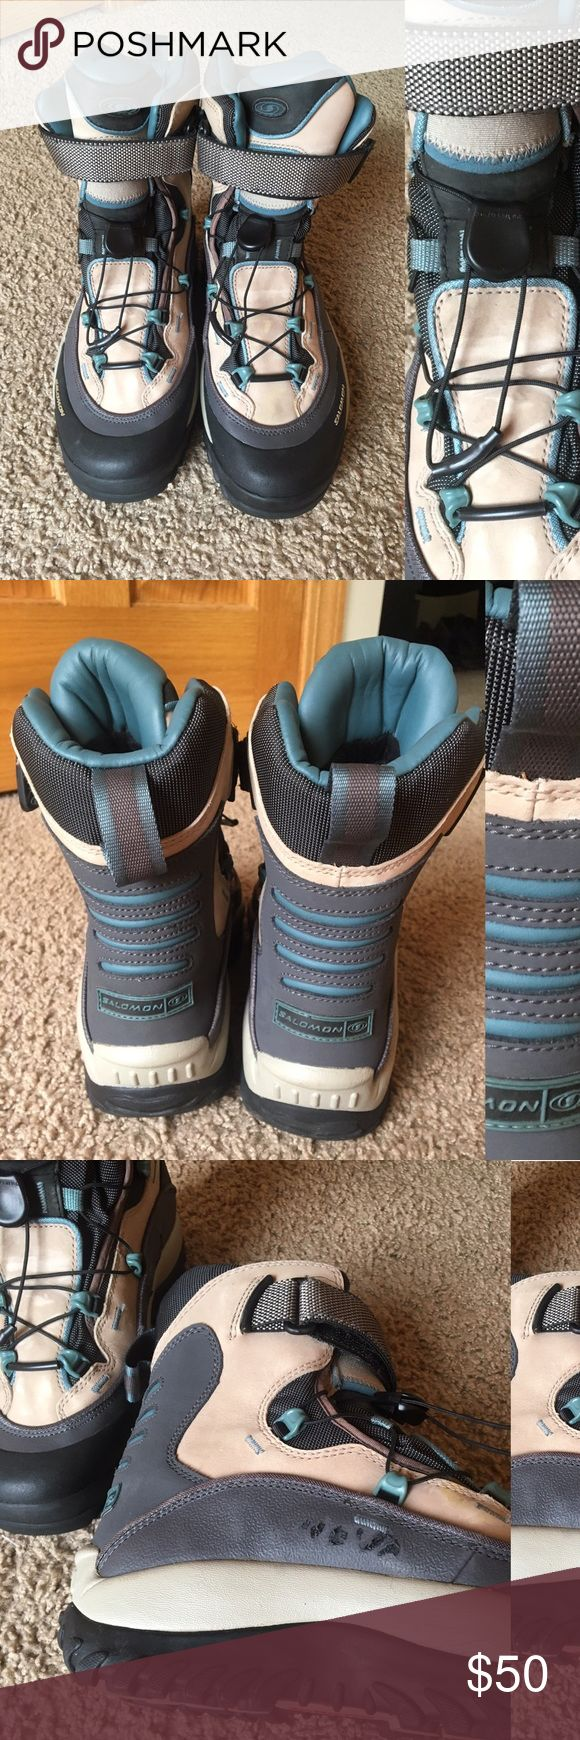 Salomon winter boots Used but in good condition, Salomon women's snow boots, made from durable leather and gore tex material, lace up and valcroe strap closure, size 7,5 Salomon Shoes Winter & Rain Boots